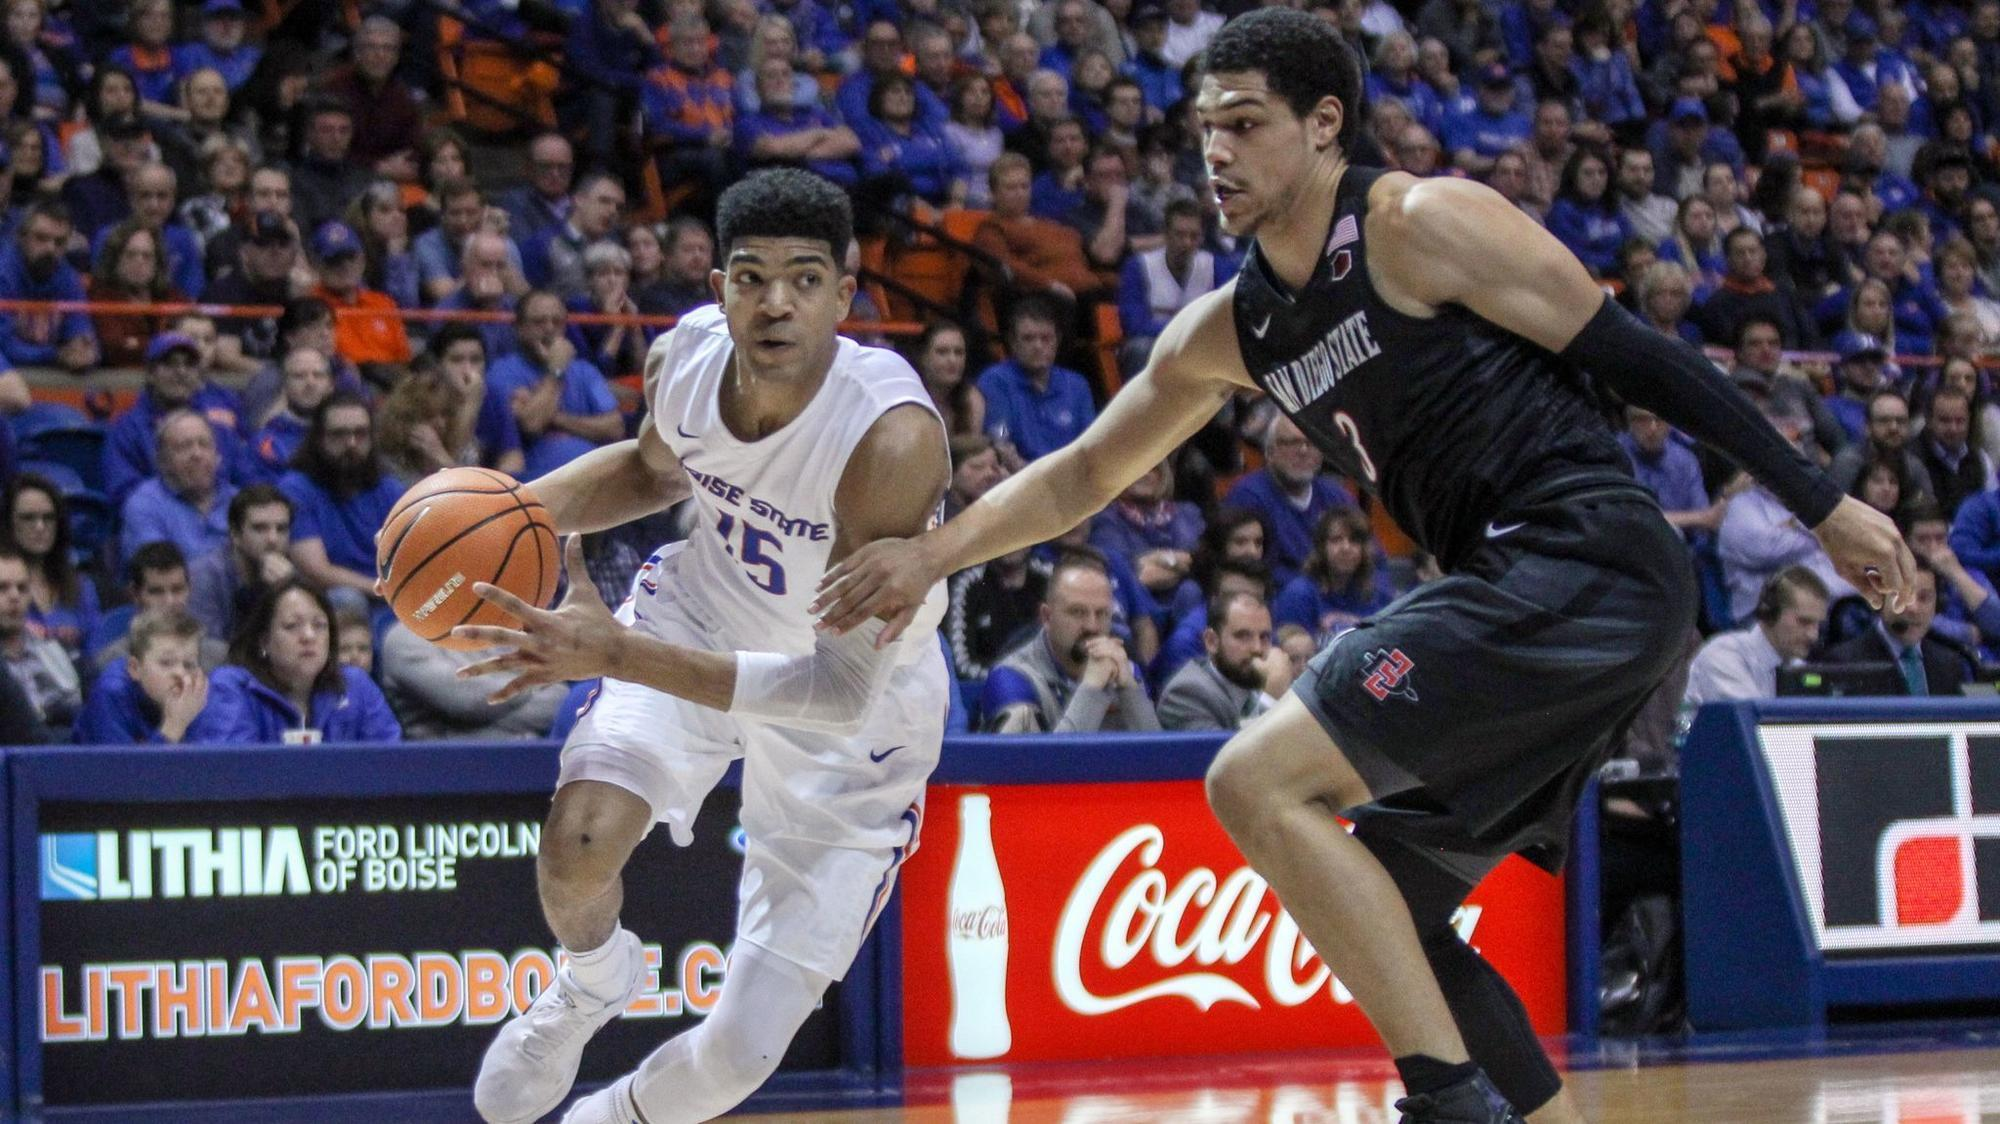 Sd-sp-sdsu-basketball-3-thoughts-boise-state-20180114